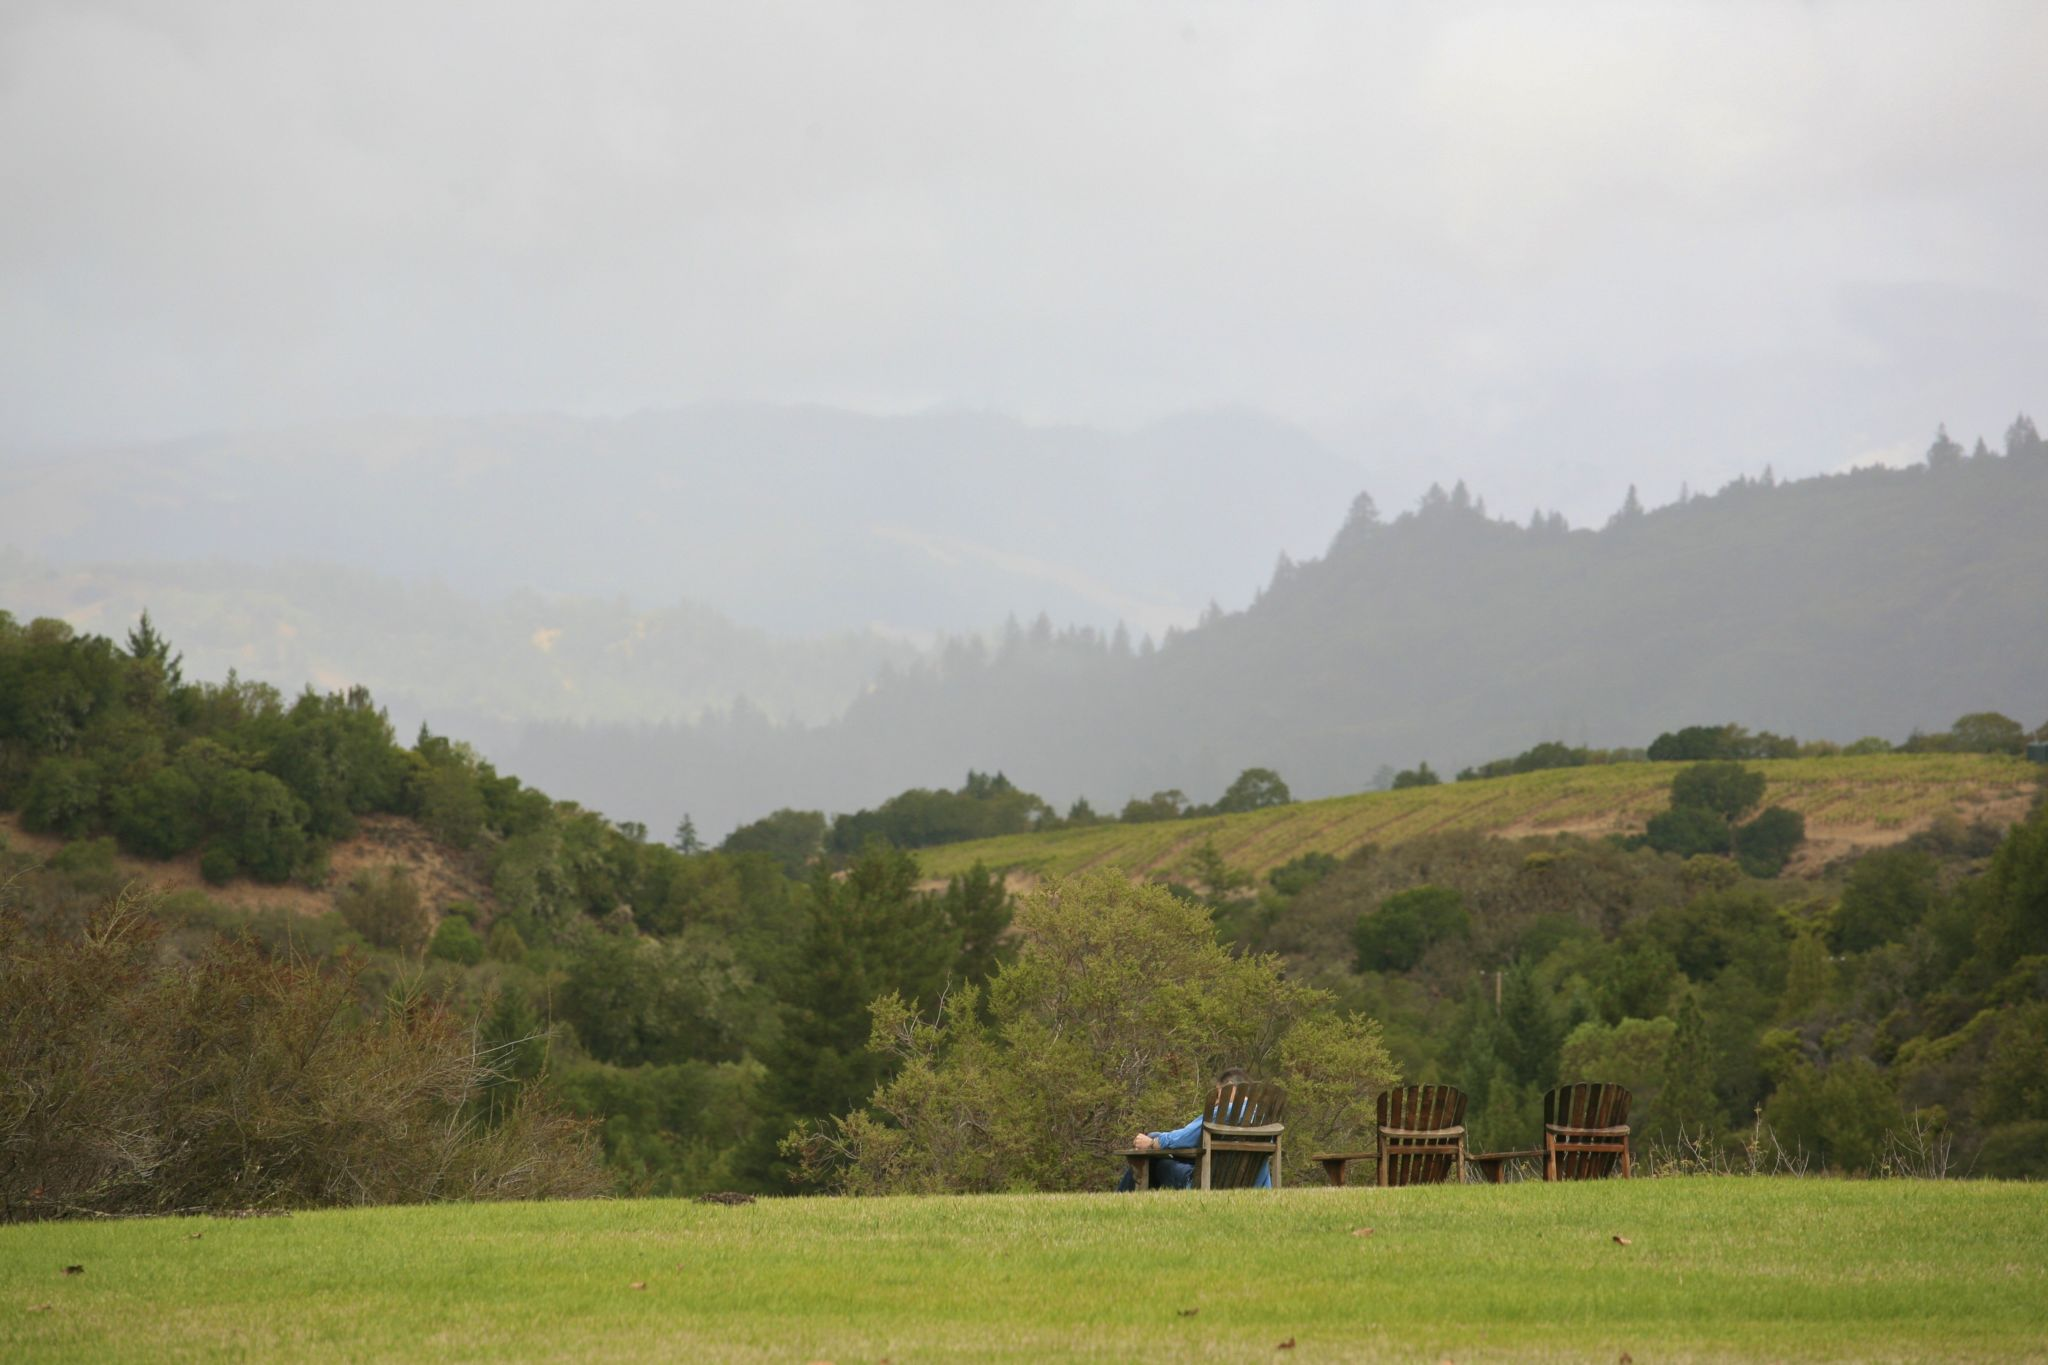 Mayacamas Ranch retreat center